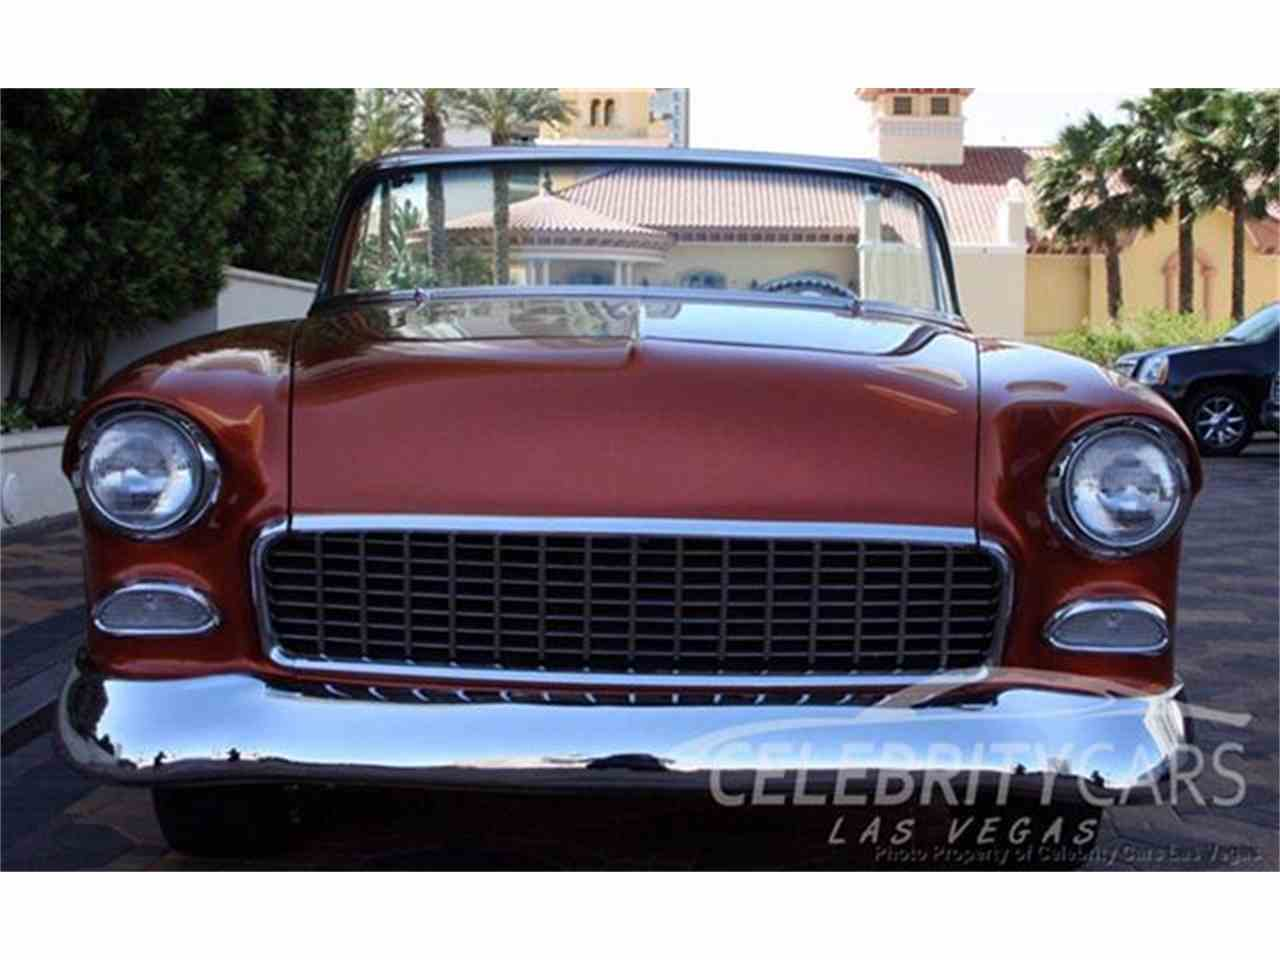 Large Picture of Classic 1955 Chevrolet Bel Air located in Las Vegas Nevada - $159,000.00 - AMXB